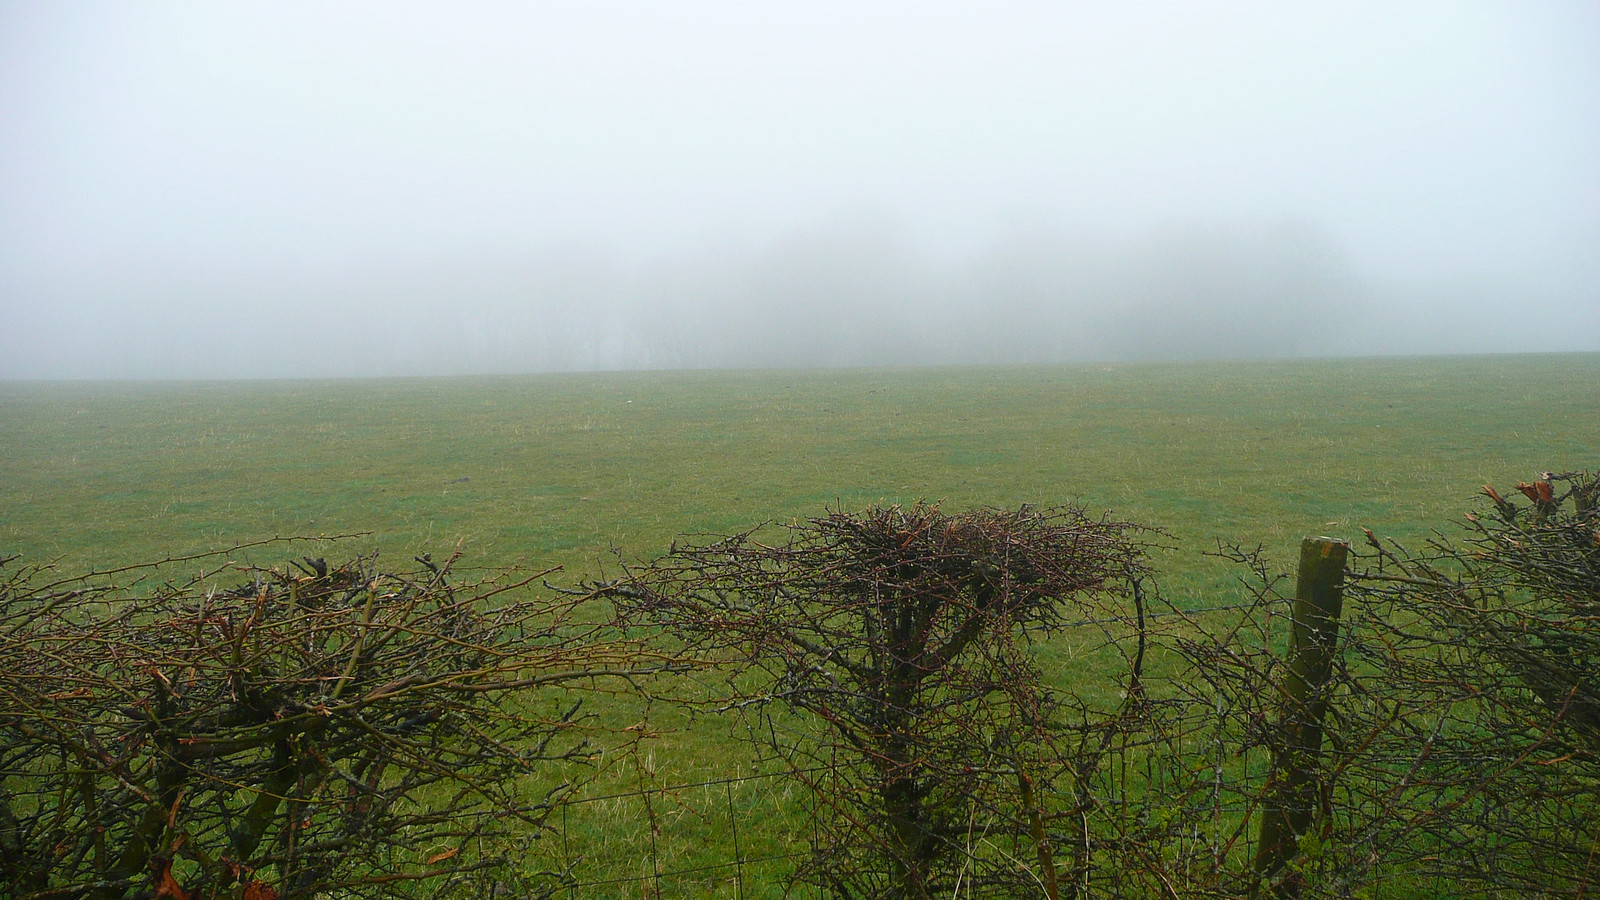 Trees in the distance Views of the South Downs (28th March 2015, low cloud, gales)